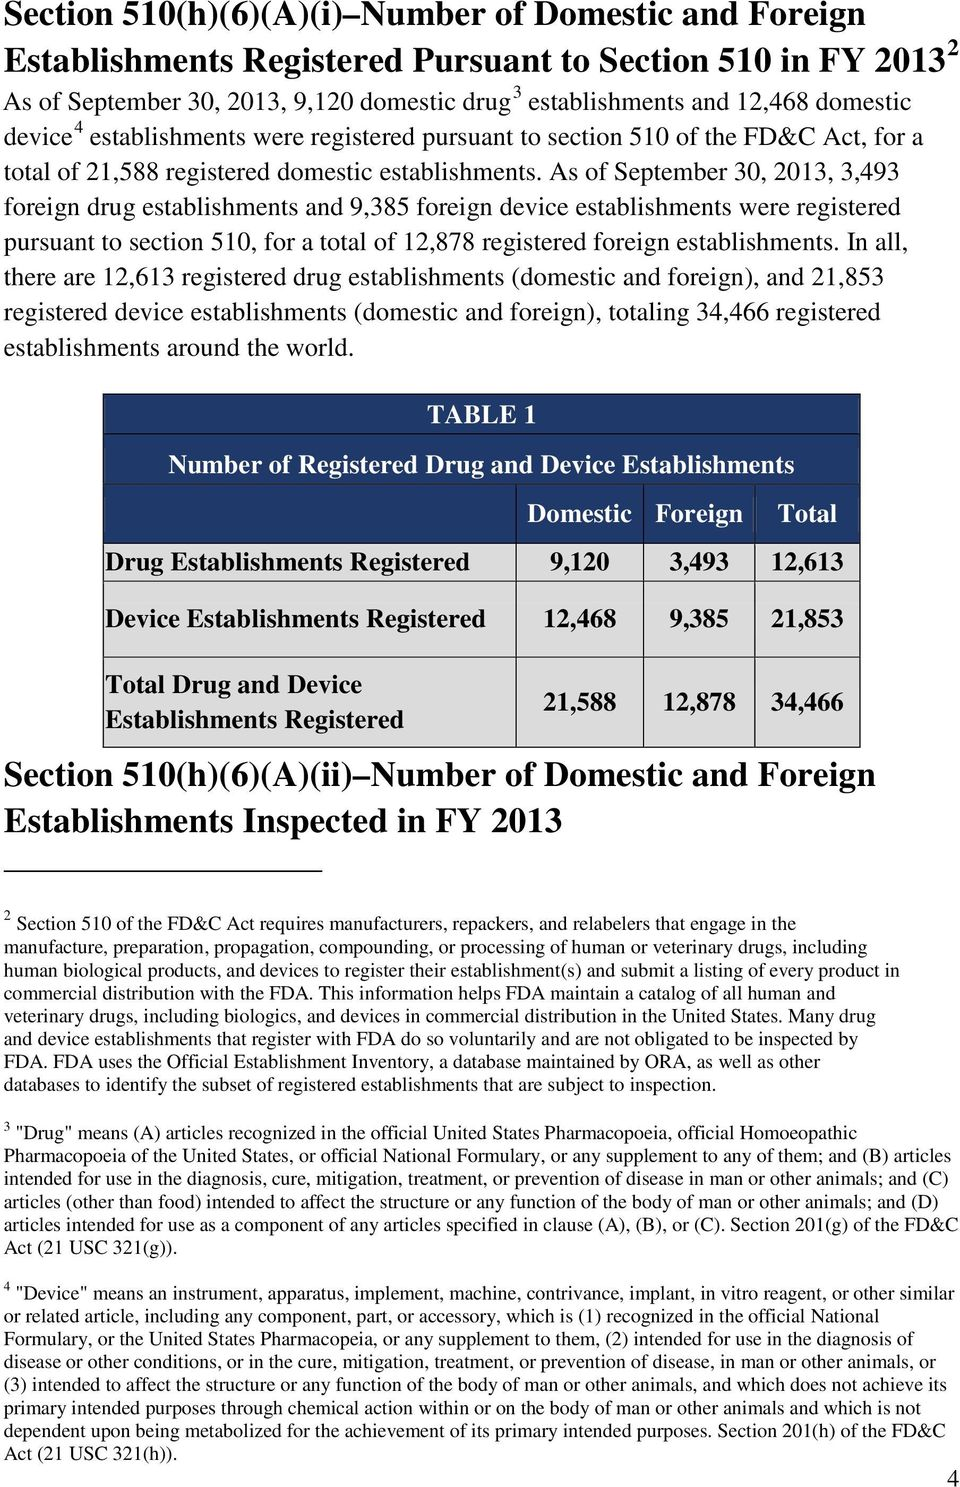 As of September 30, 2013, 3,493 foreign drug establishments and 9,385 foreign device establishments were registered pursuant to section 510, for a total of 12,878 registered foreign establishments.